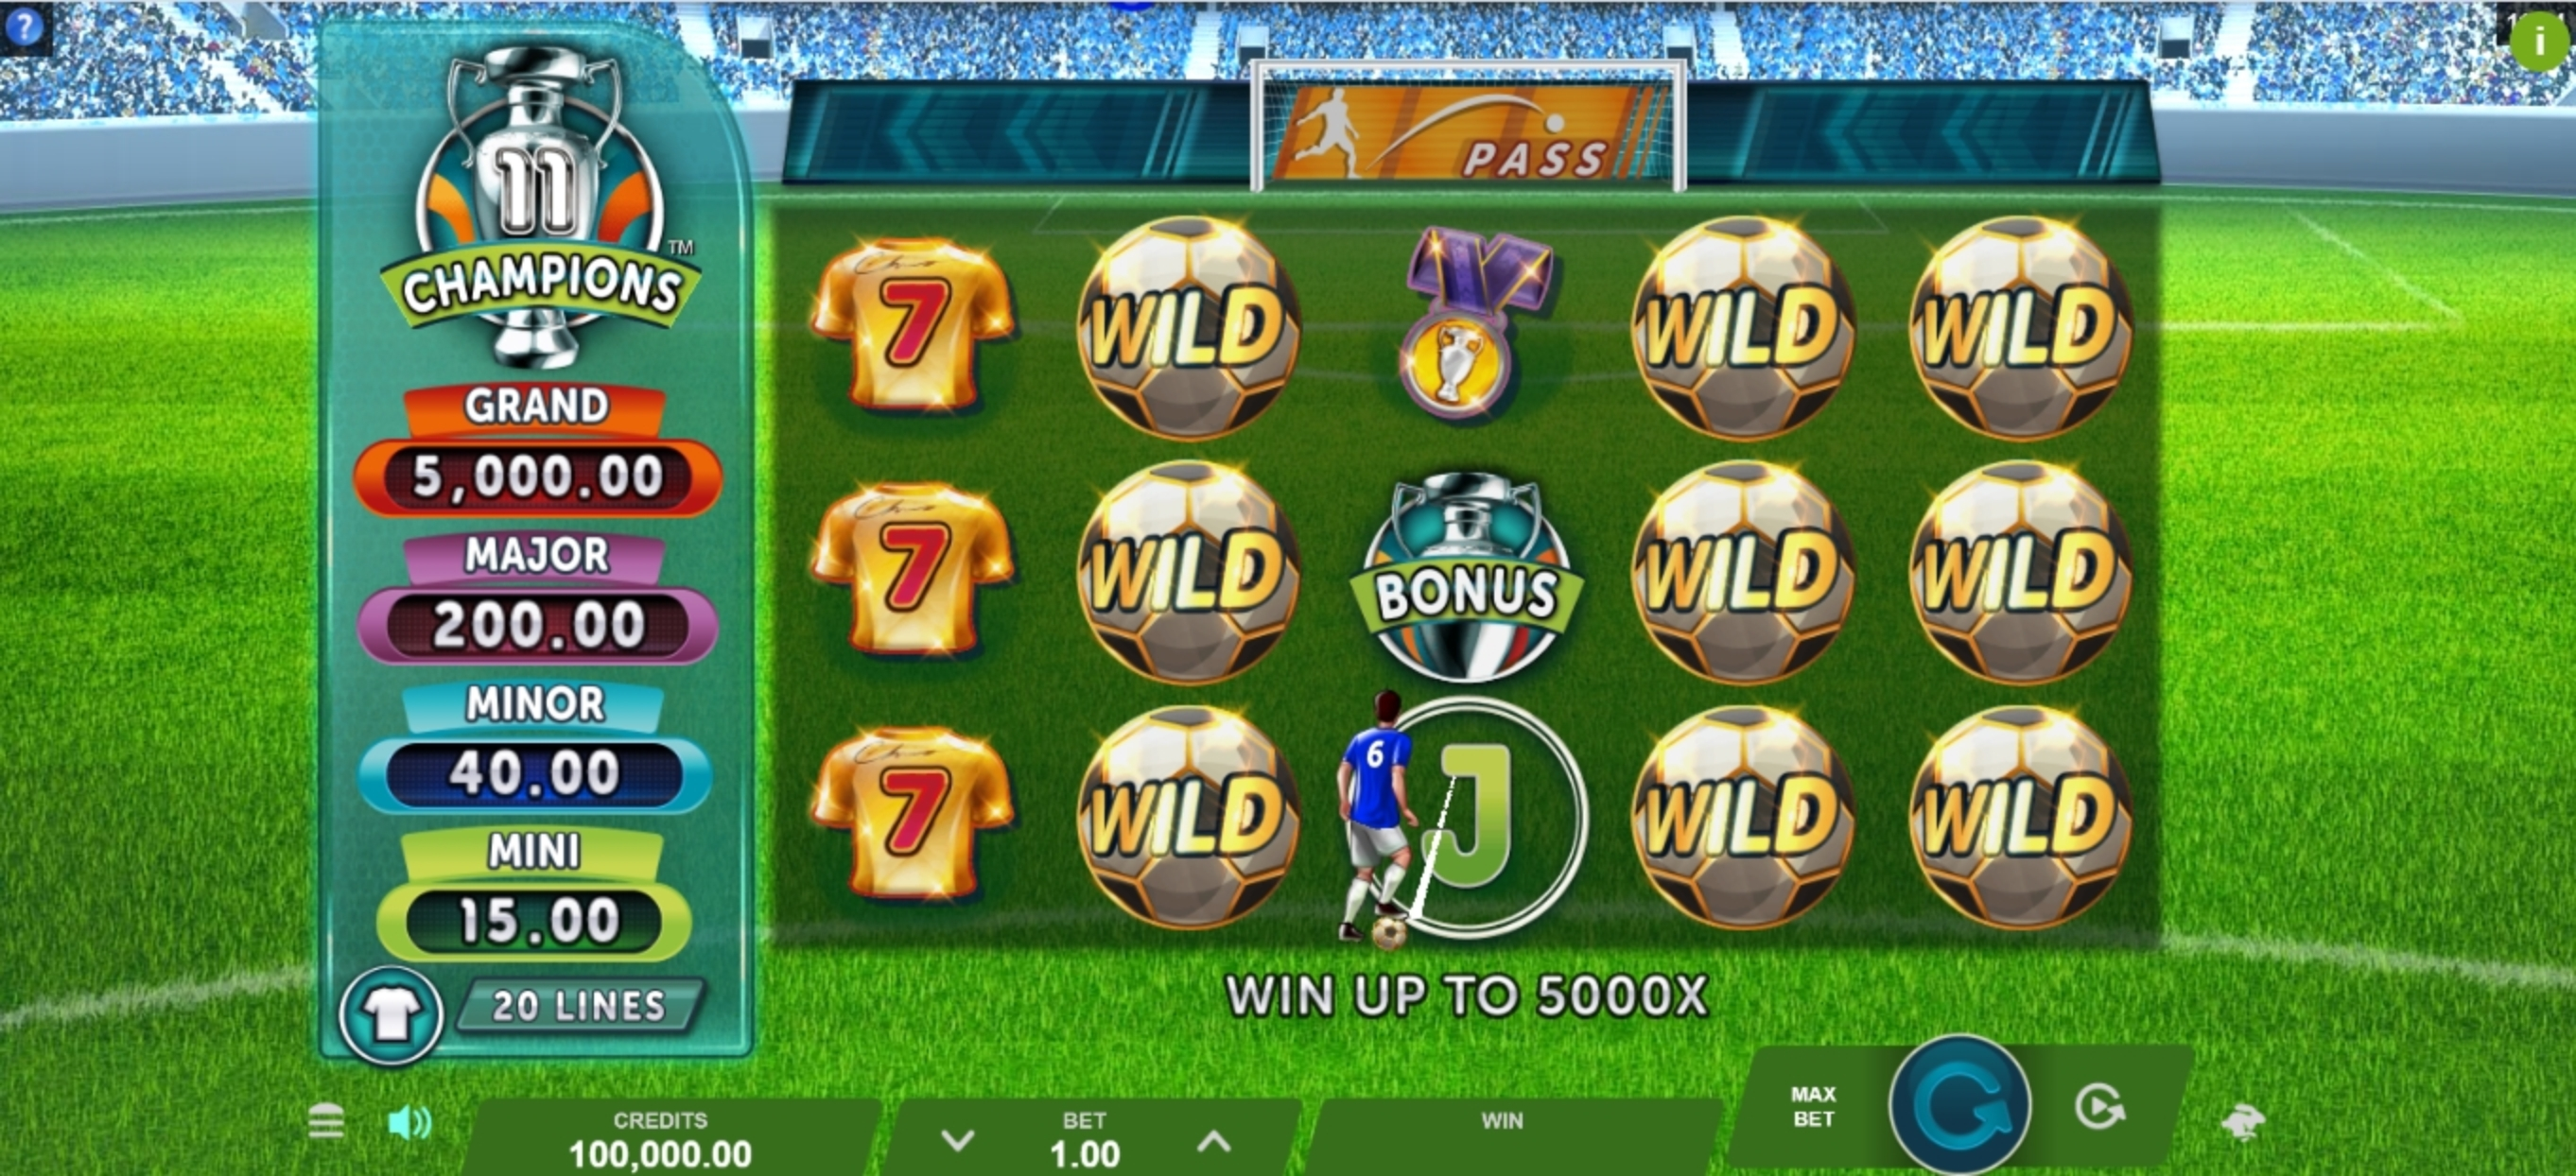 Reels in 11 Champions Slot Game by Gameburger Studios